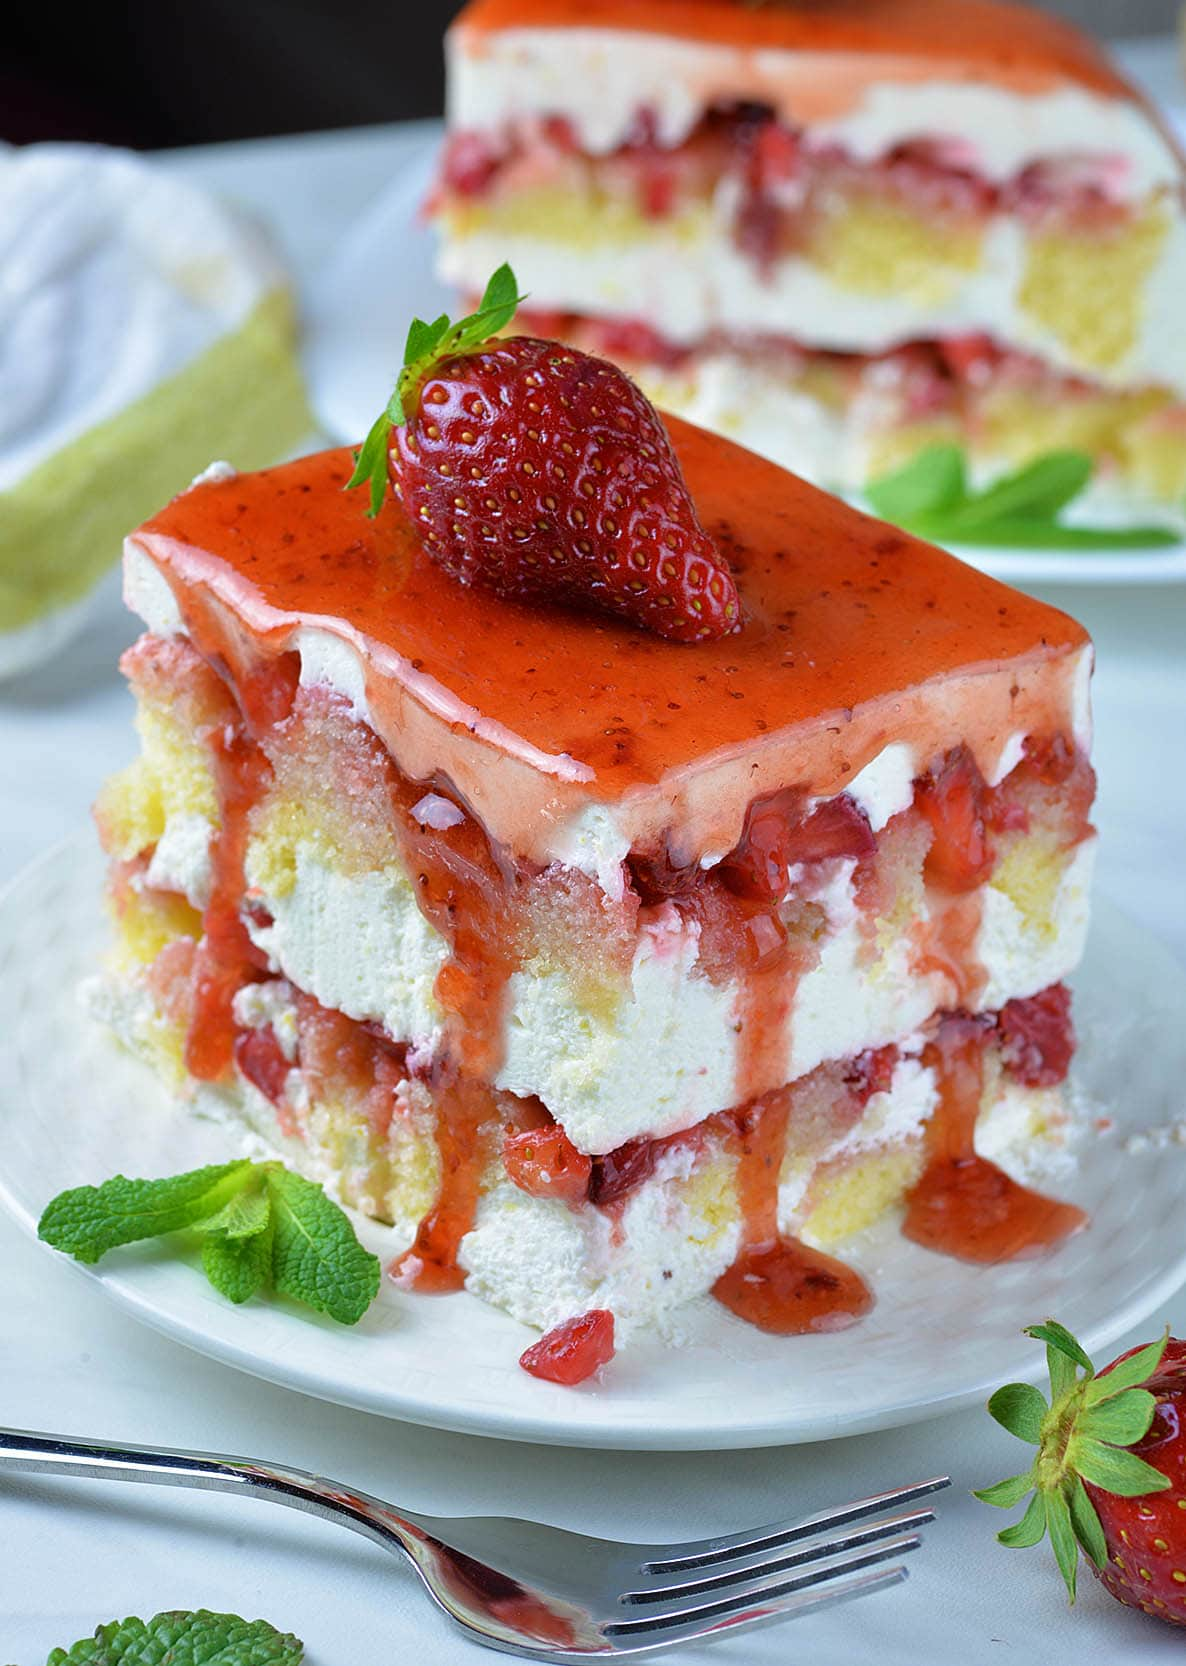 Strawberry Icebox Shortcake is delicious combo of Strawberry Shortcake and Strawberry Icebox Cake and perfect spring and summer treat with fresh strawberries.